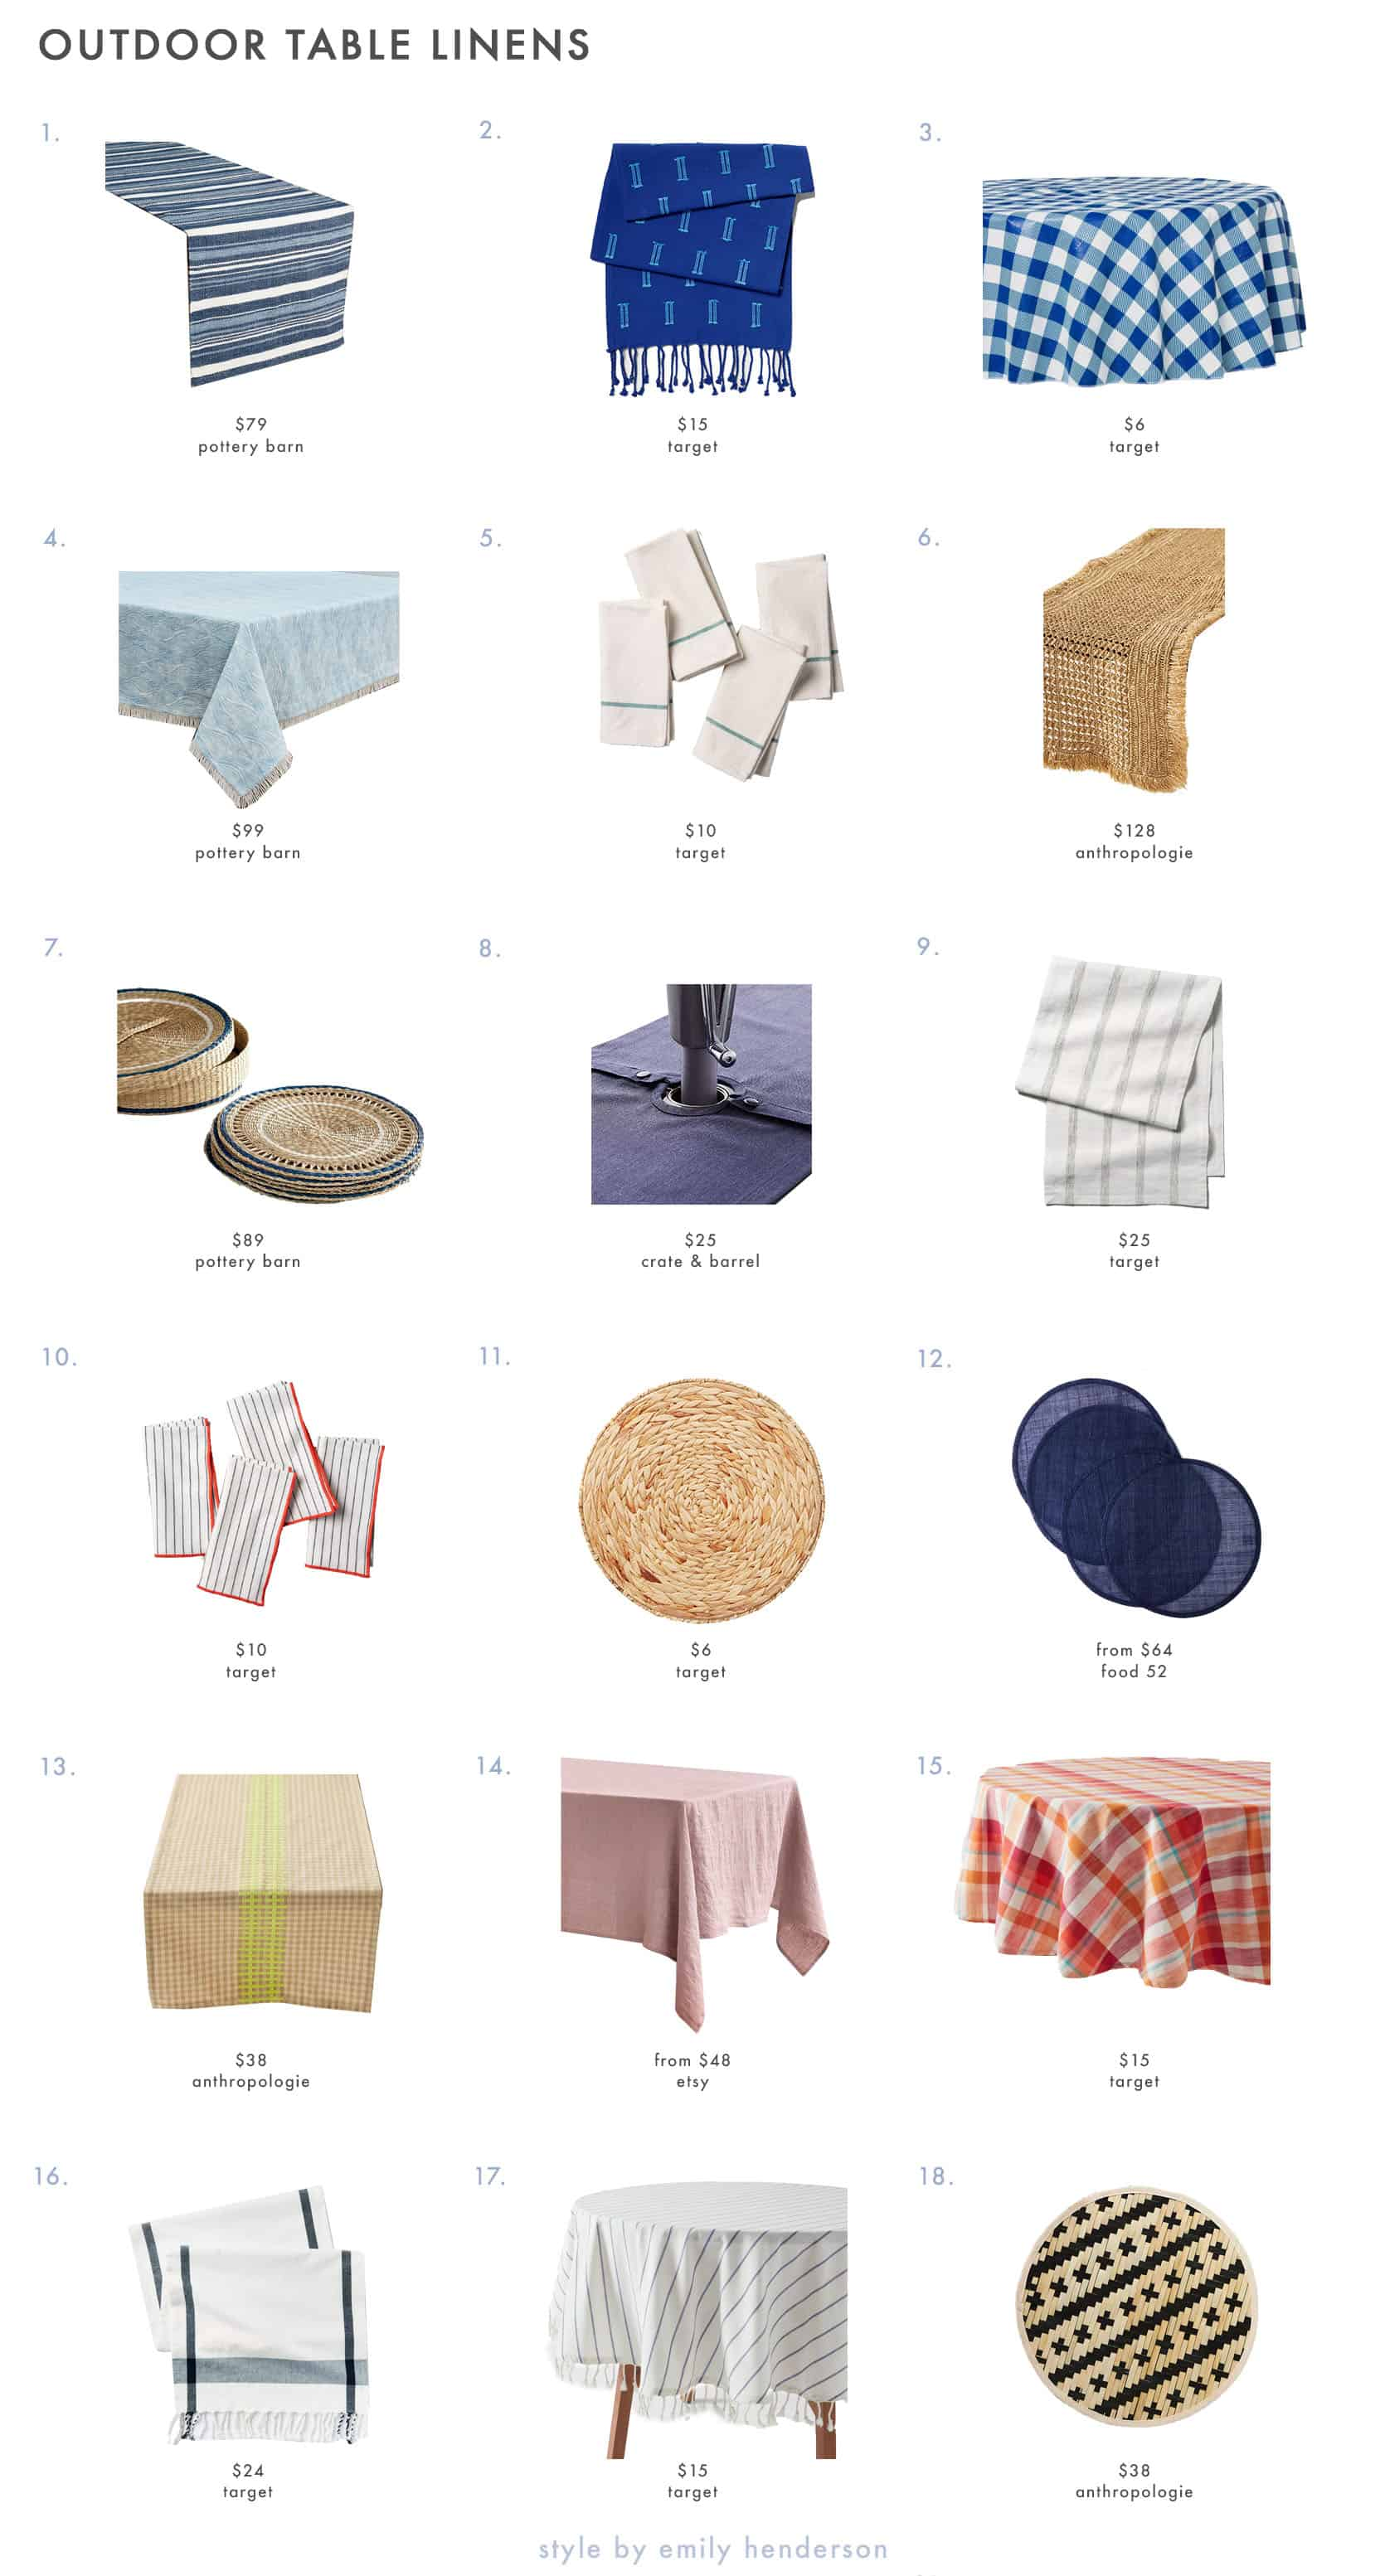 Emily Henderson Outdoor Dining Table Linens 1